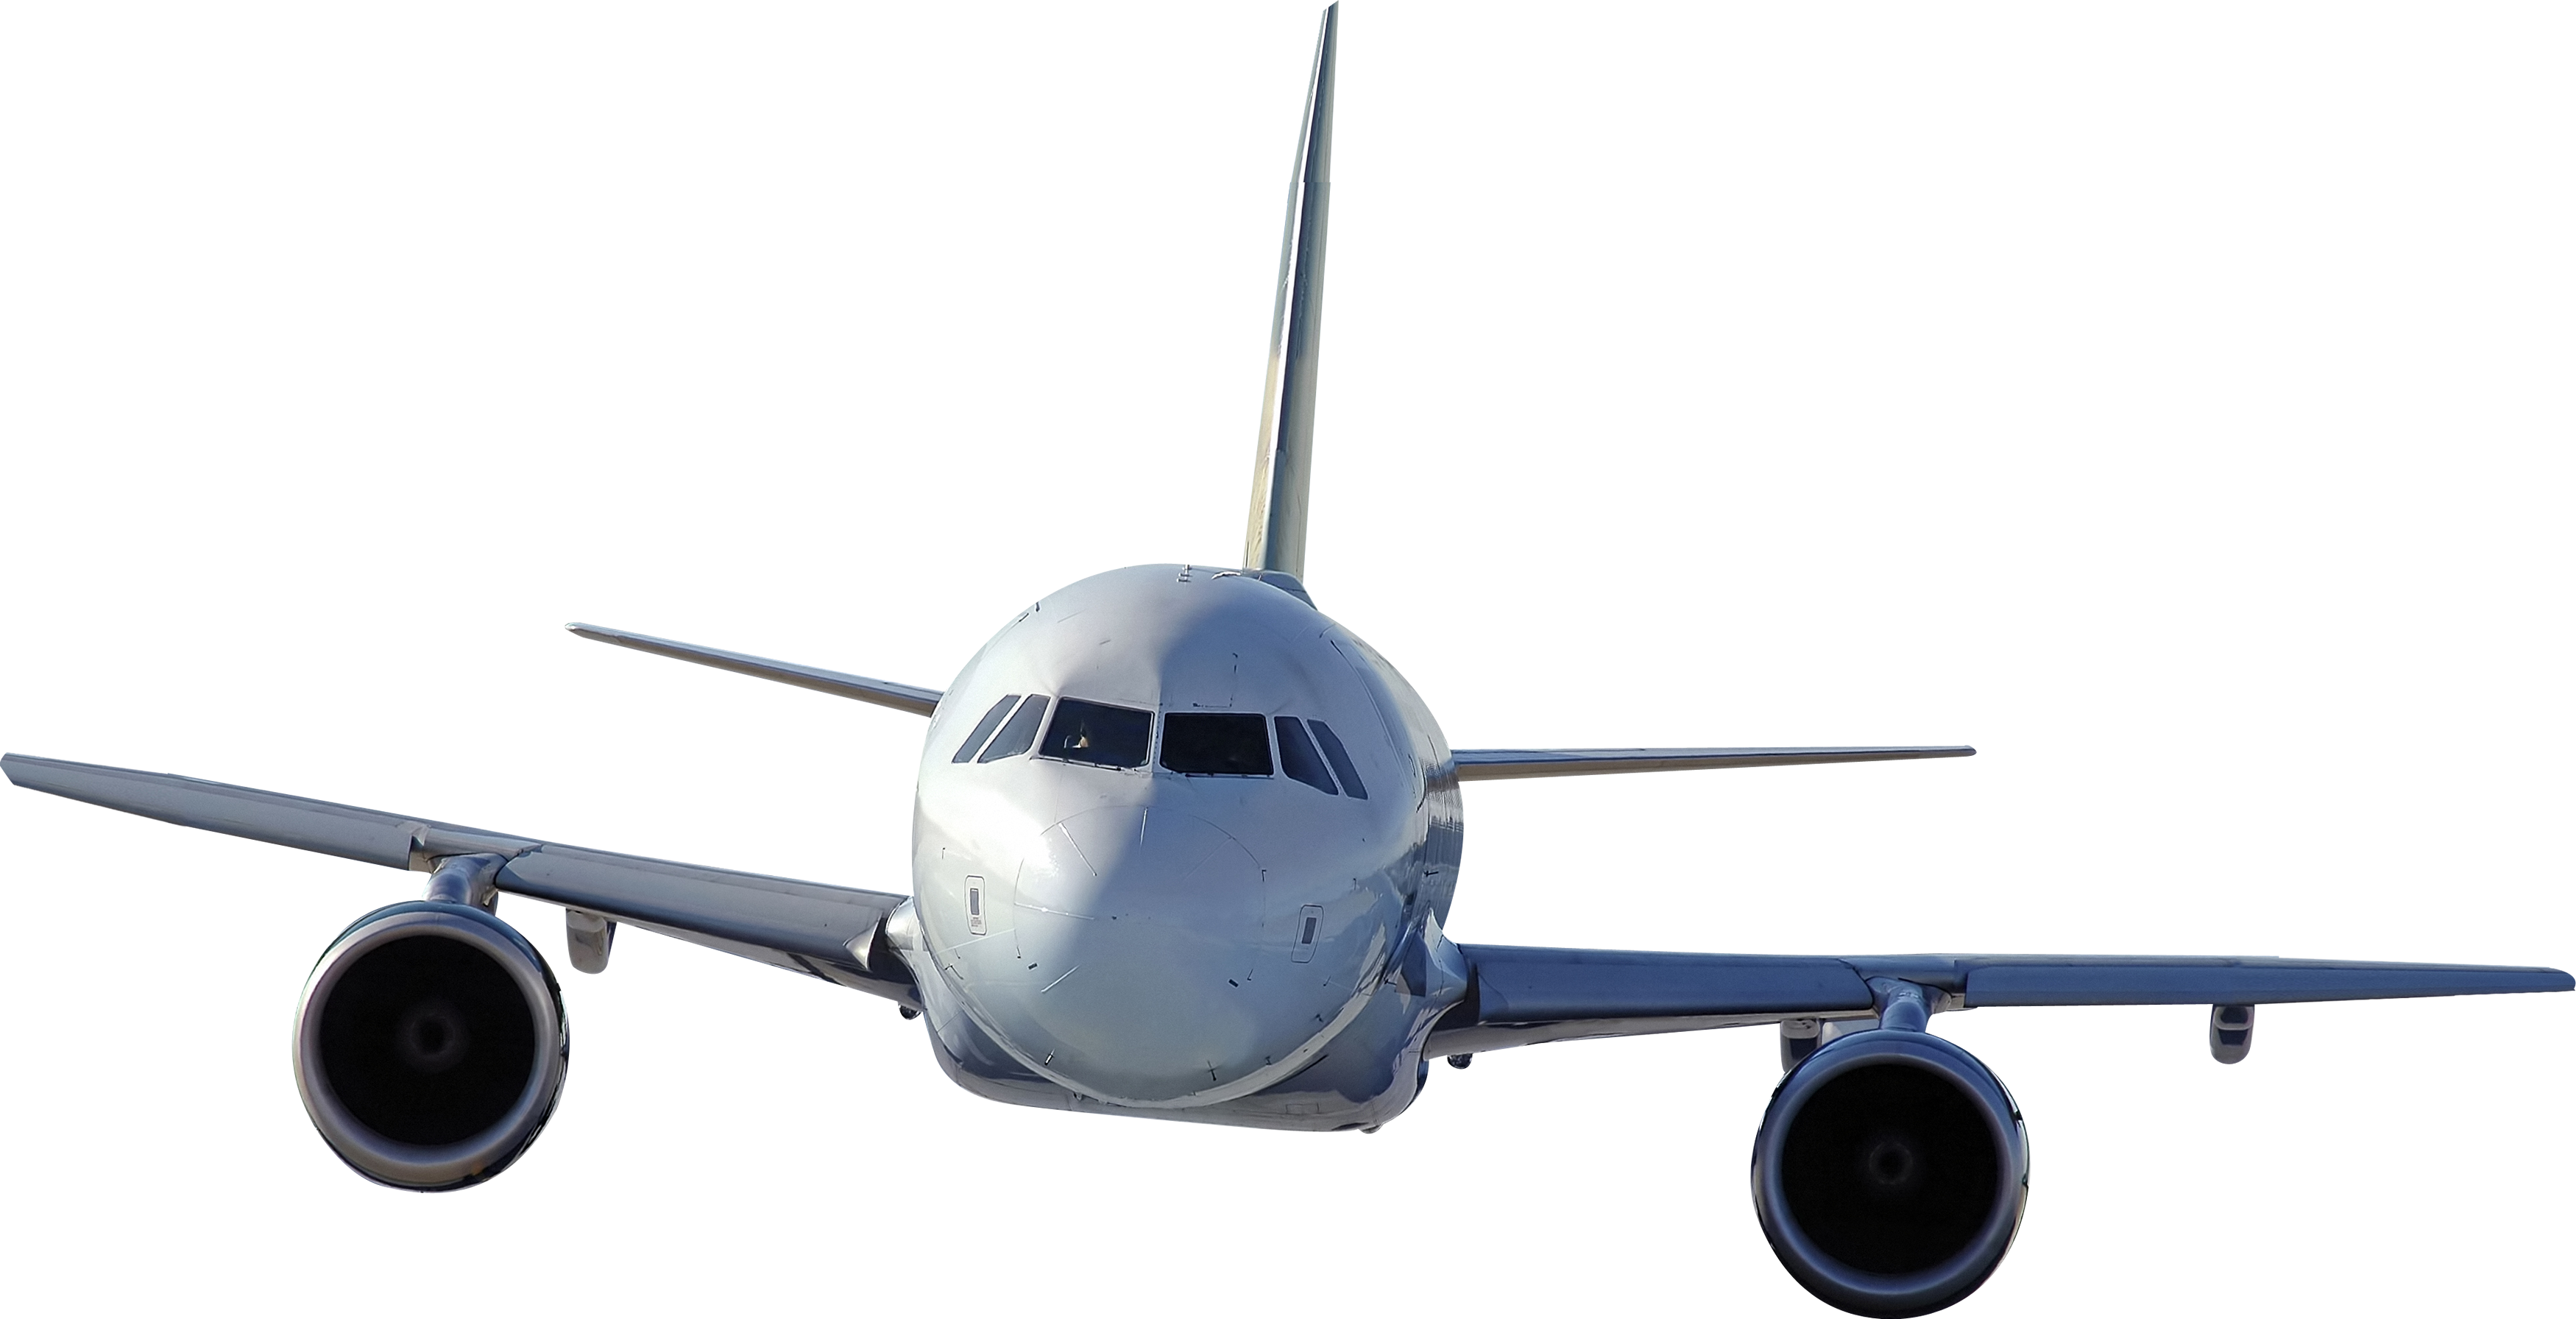 Plane Png5219 Png 3 500 1 792 Pixels Delta Airlines Air Ticket Booking Aeroplane